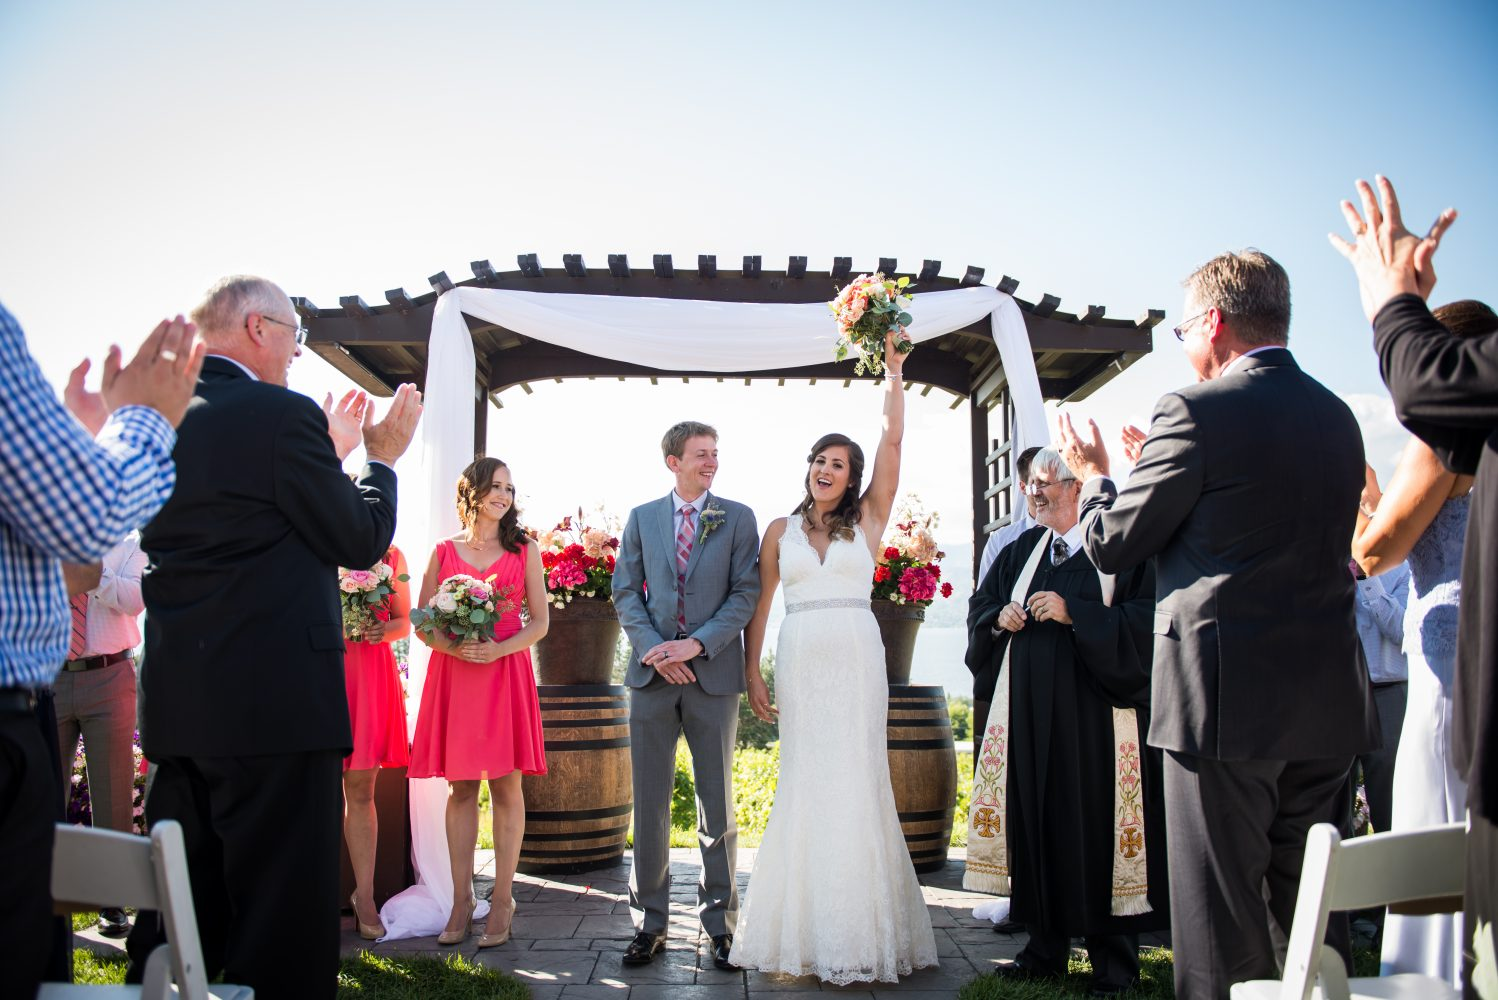 A celebration as they are pronounced Husband and Wife at Pyramid Hill Winery in Kelowna British Columbia | 3Haus Photographics